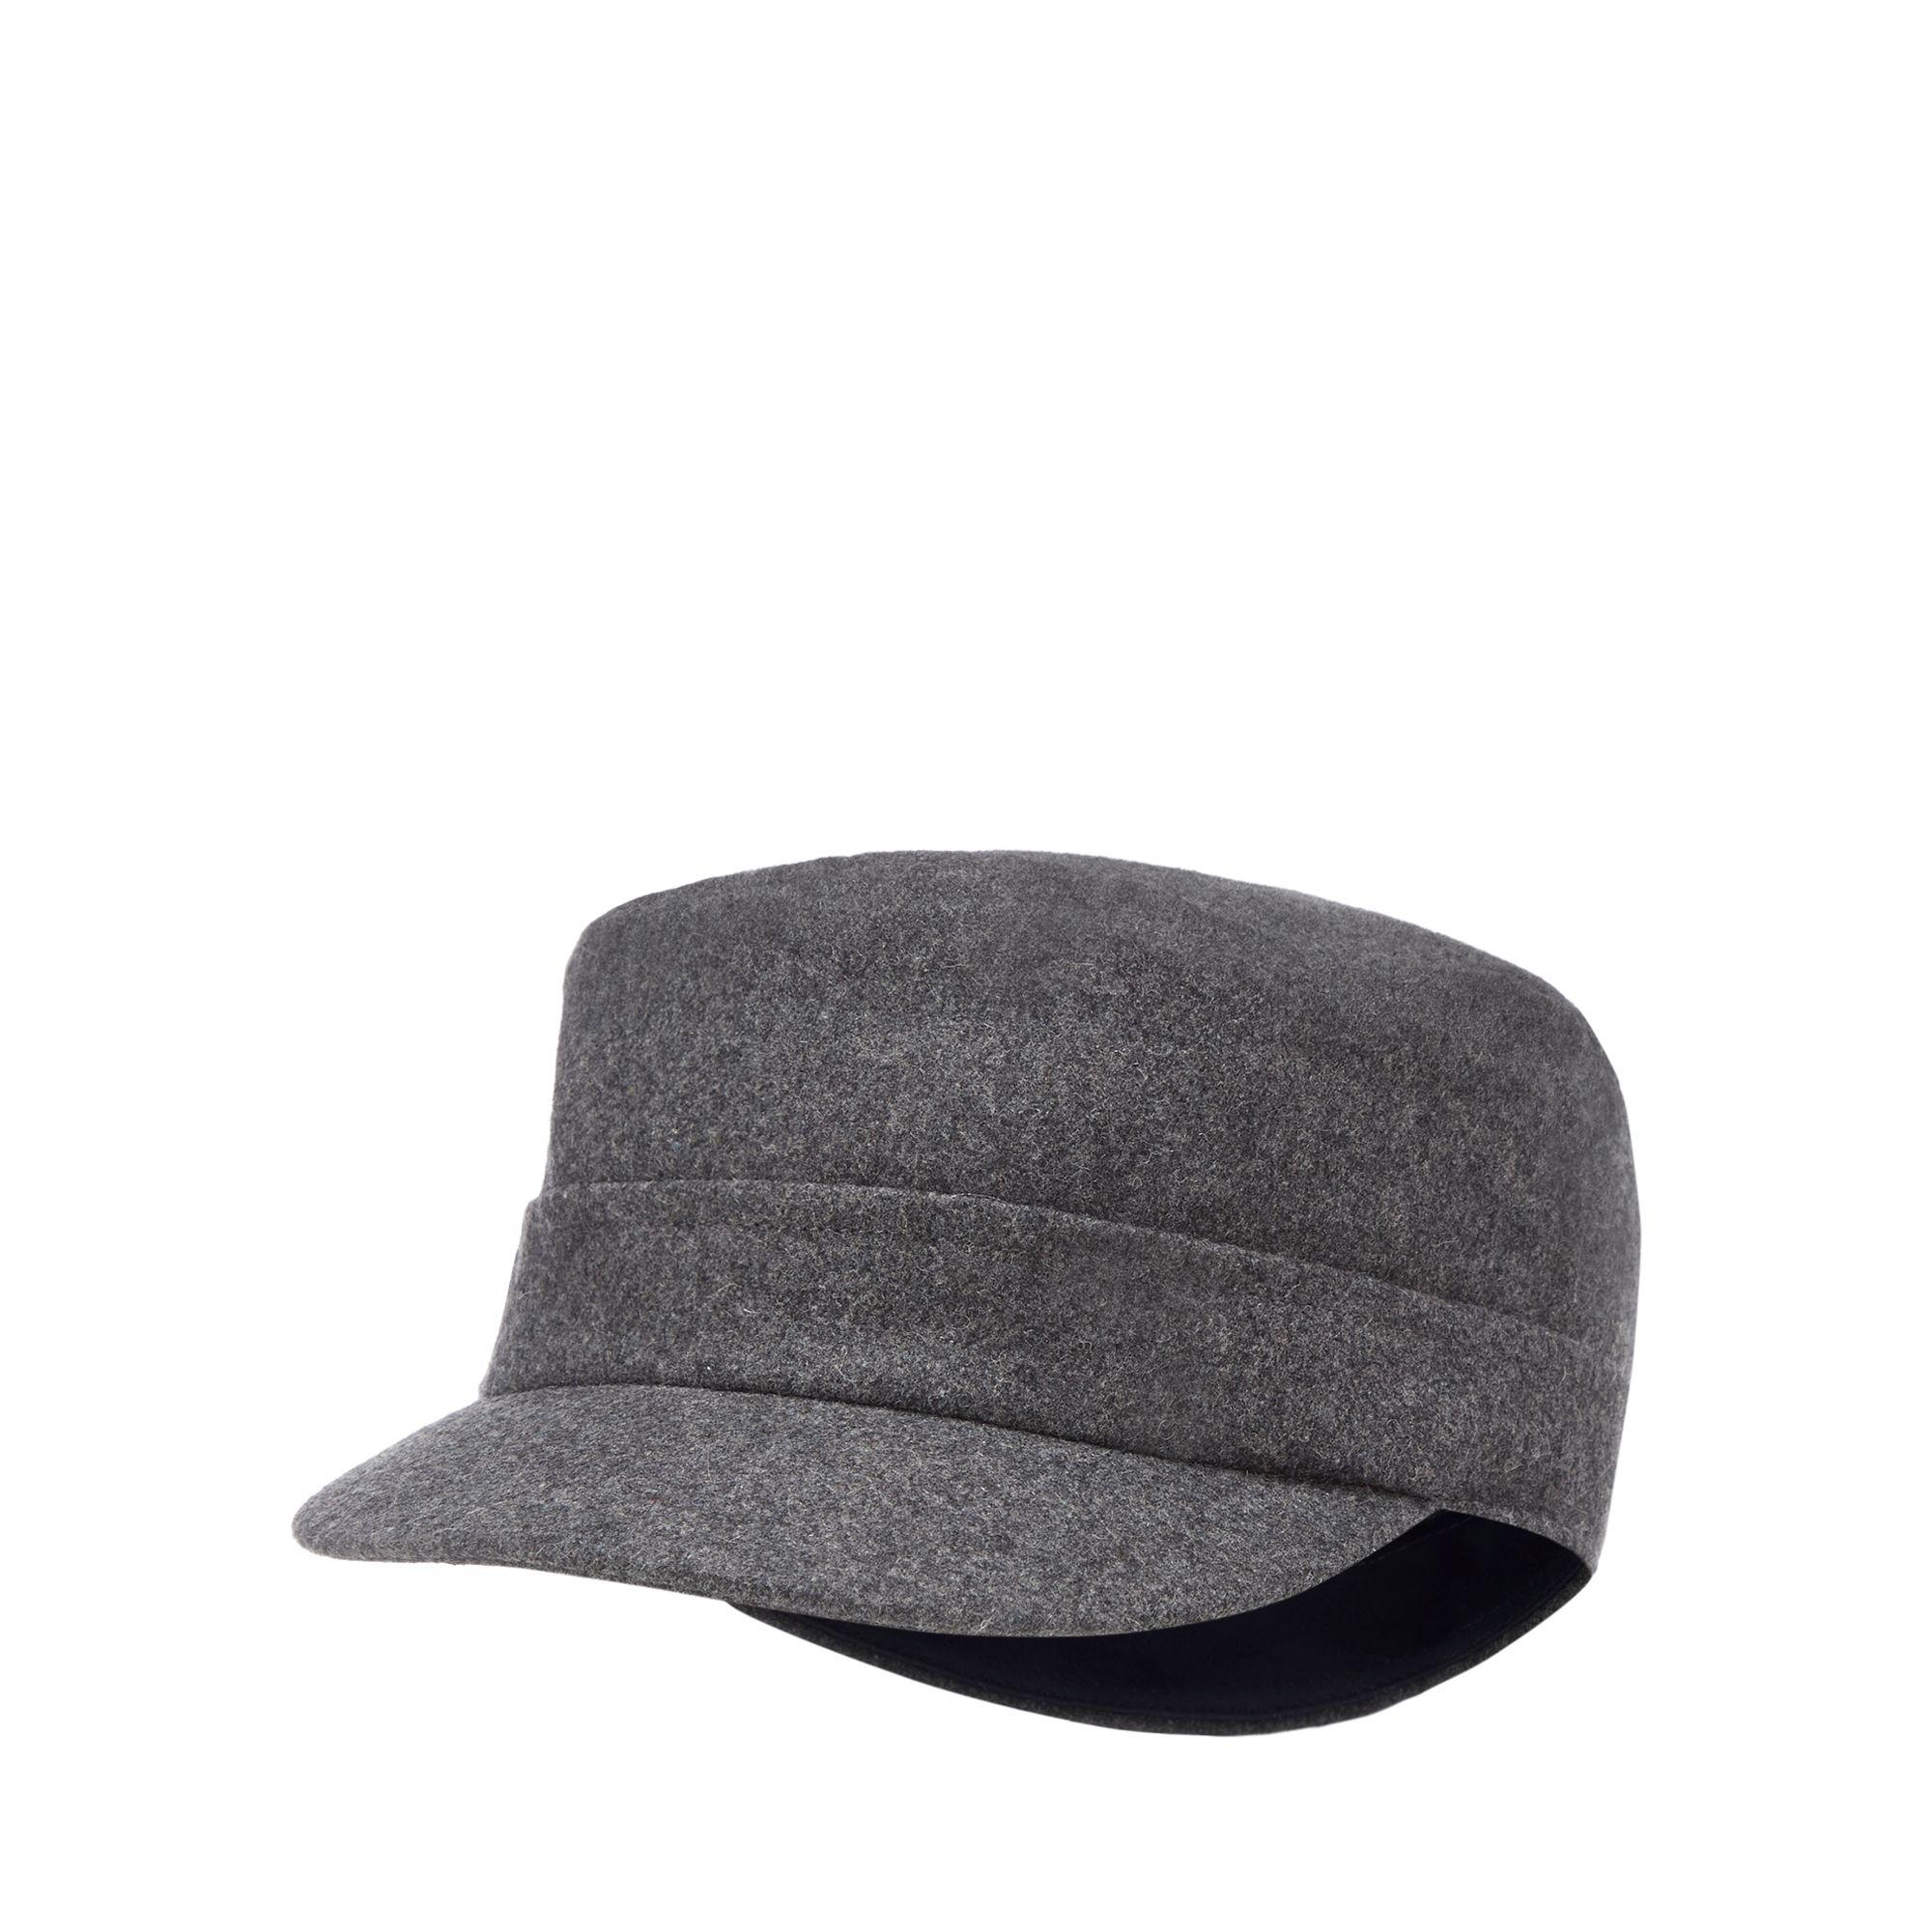 16a63a6742c J By Jasper Conran Grey Train Driver Hat With Wool in Gray for Men ...